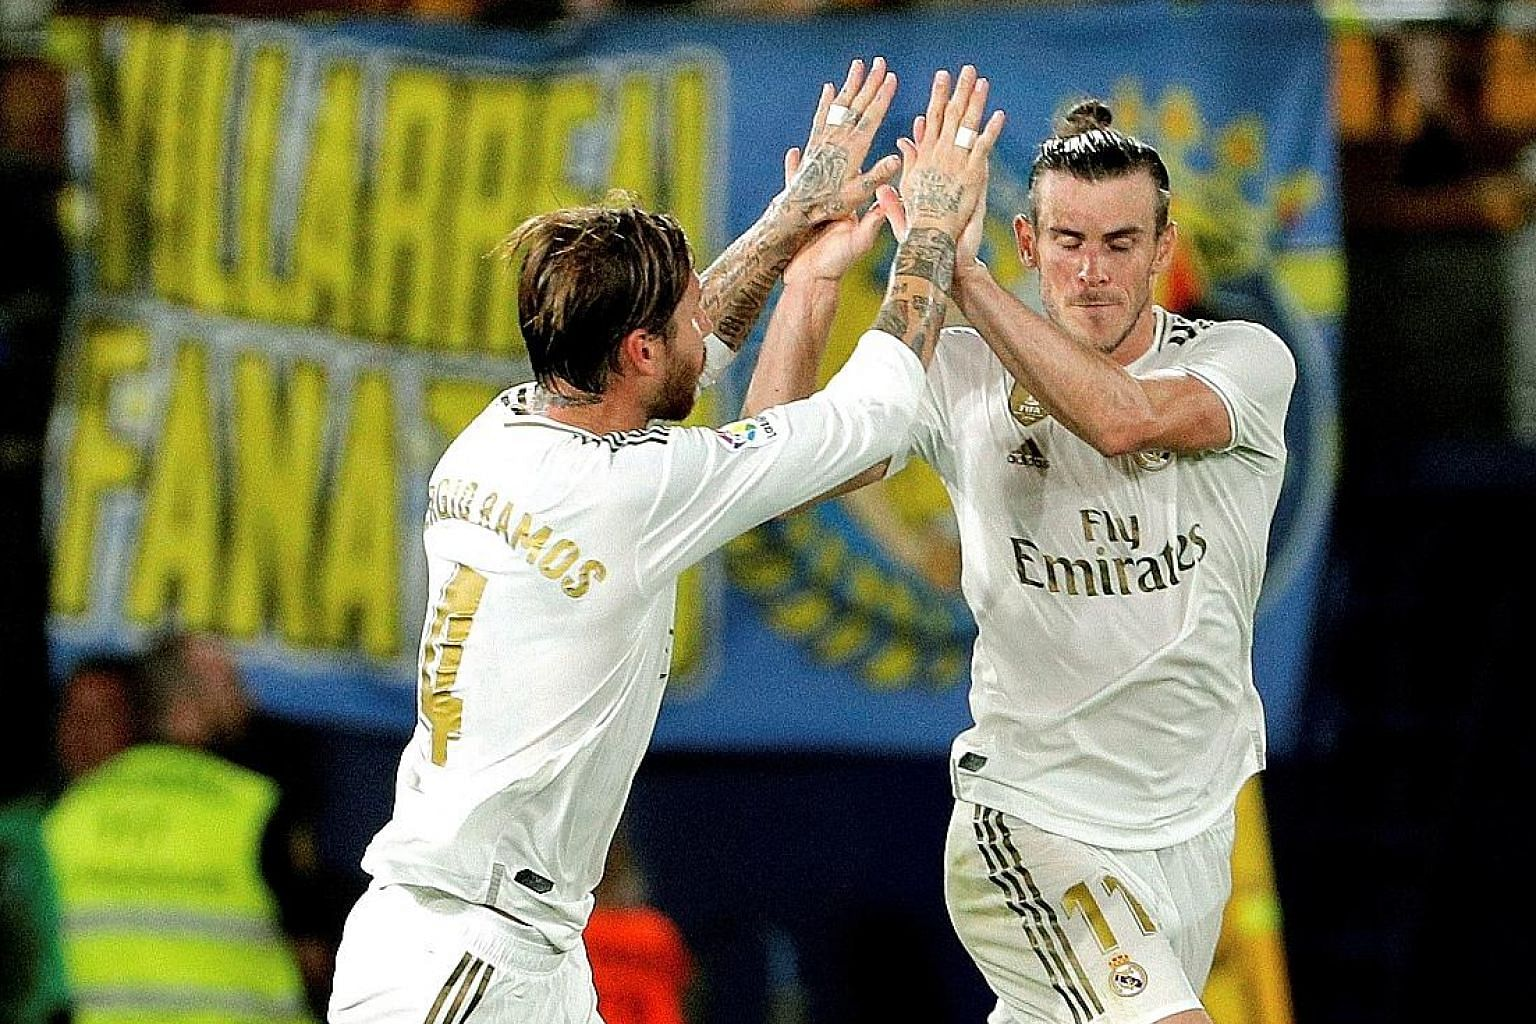 Real Madrid's Gareth Bale celebrates one of his goals against Villarreal with Sergio Ramos. He scored both Real's goals in a 2-2 draw before getting his marching orders. PHOTO: EPA-EFE